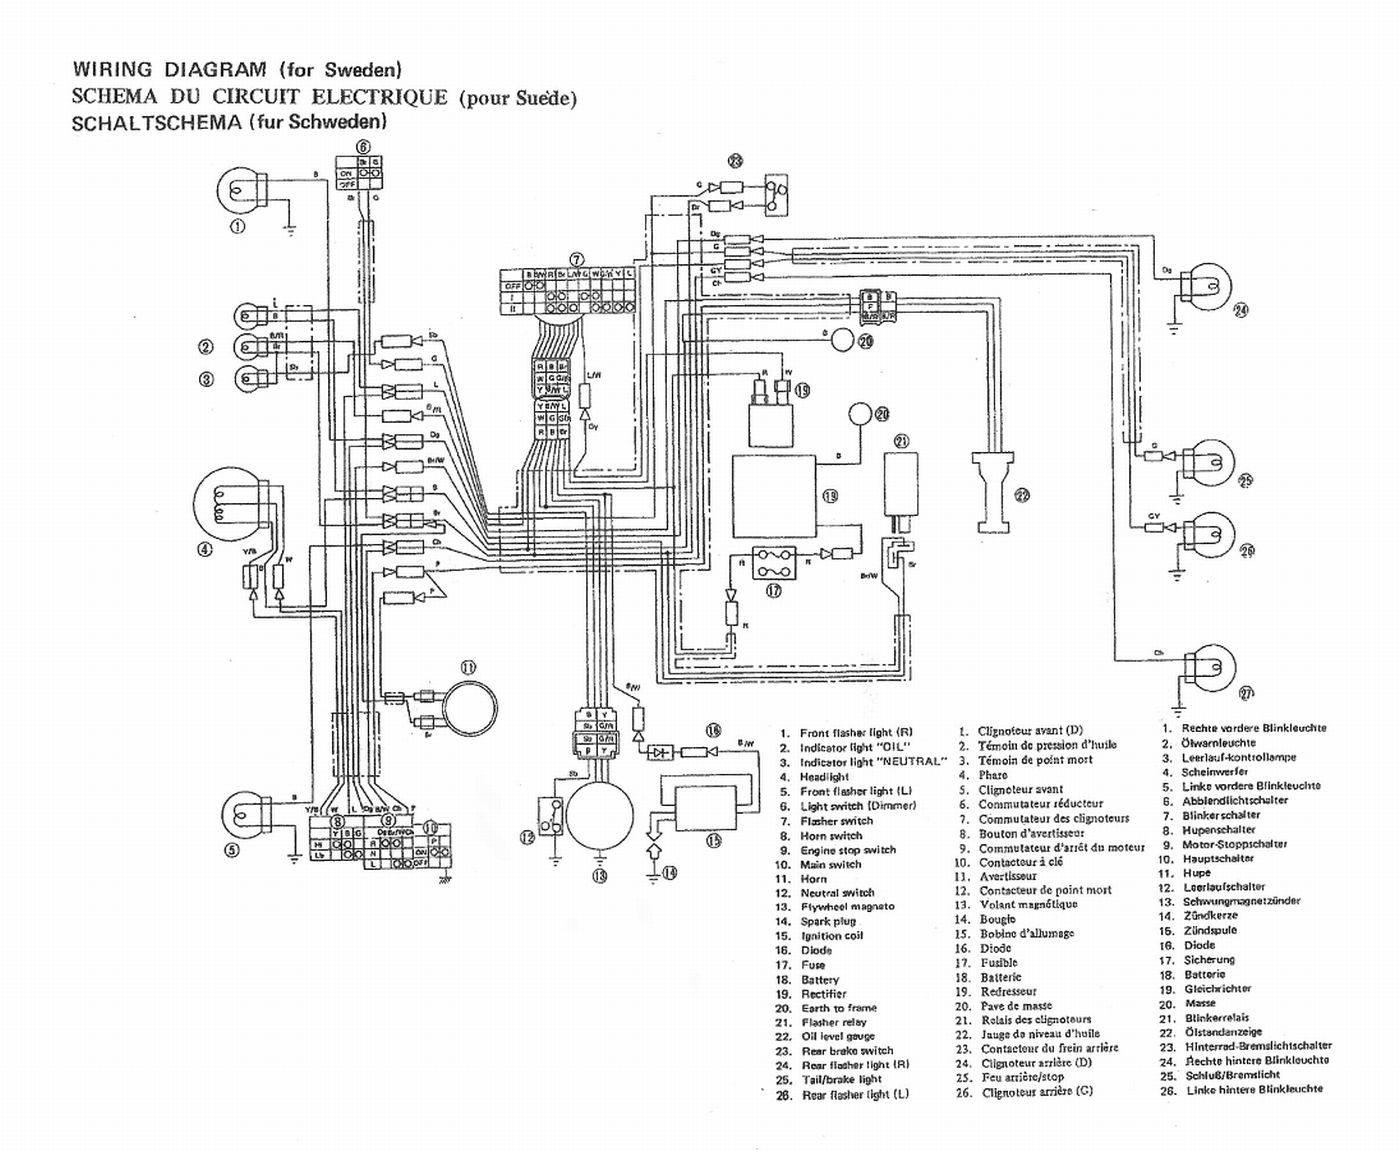 Yamaha Chappy Fuel Diagram, Yamaha, Free Engine Image For